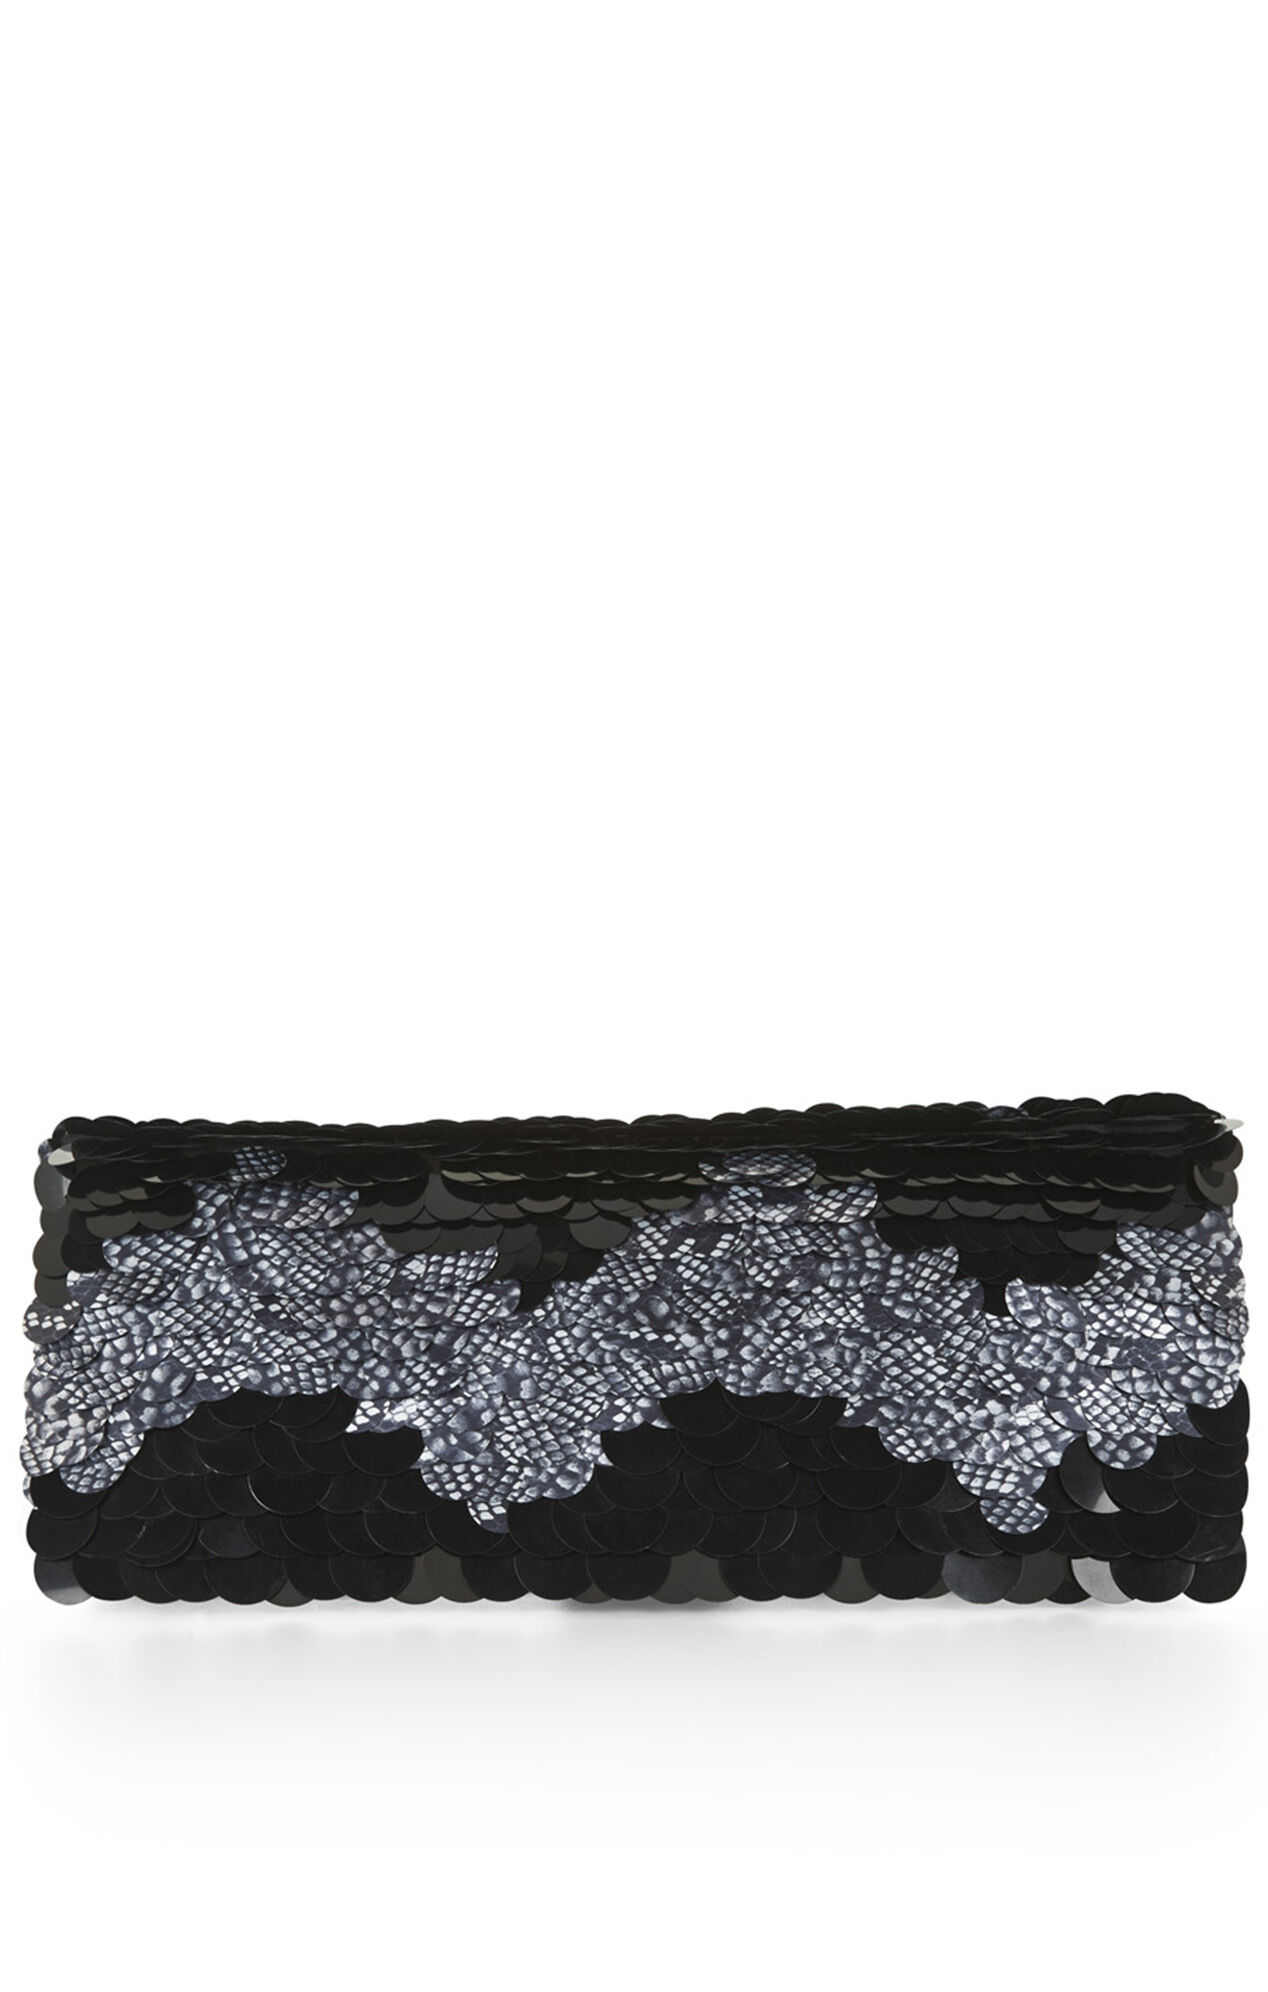 Amelie Chevron Paillettes Clutch